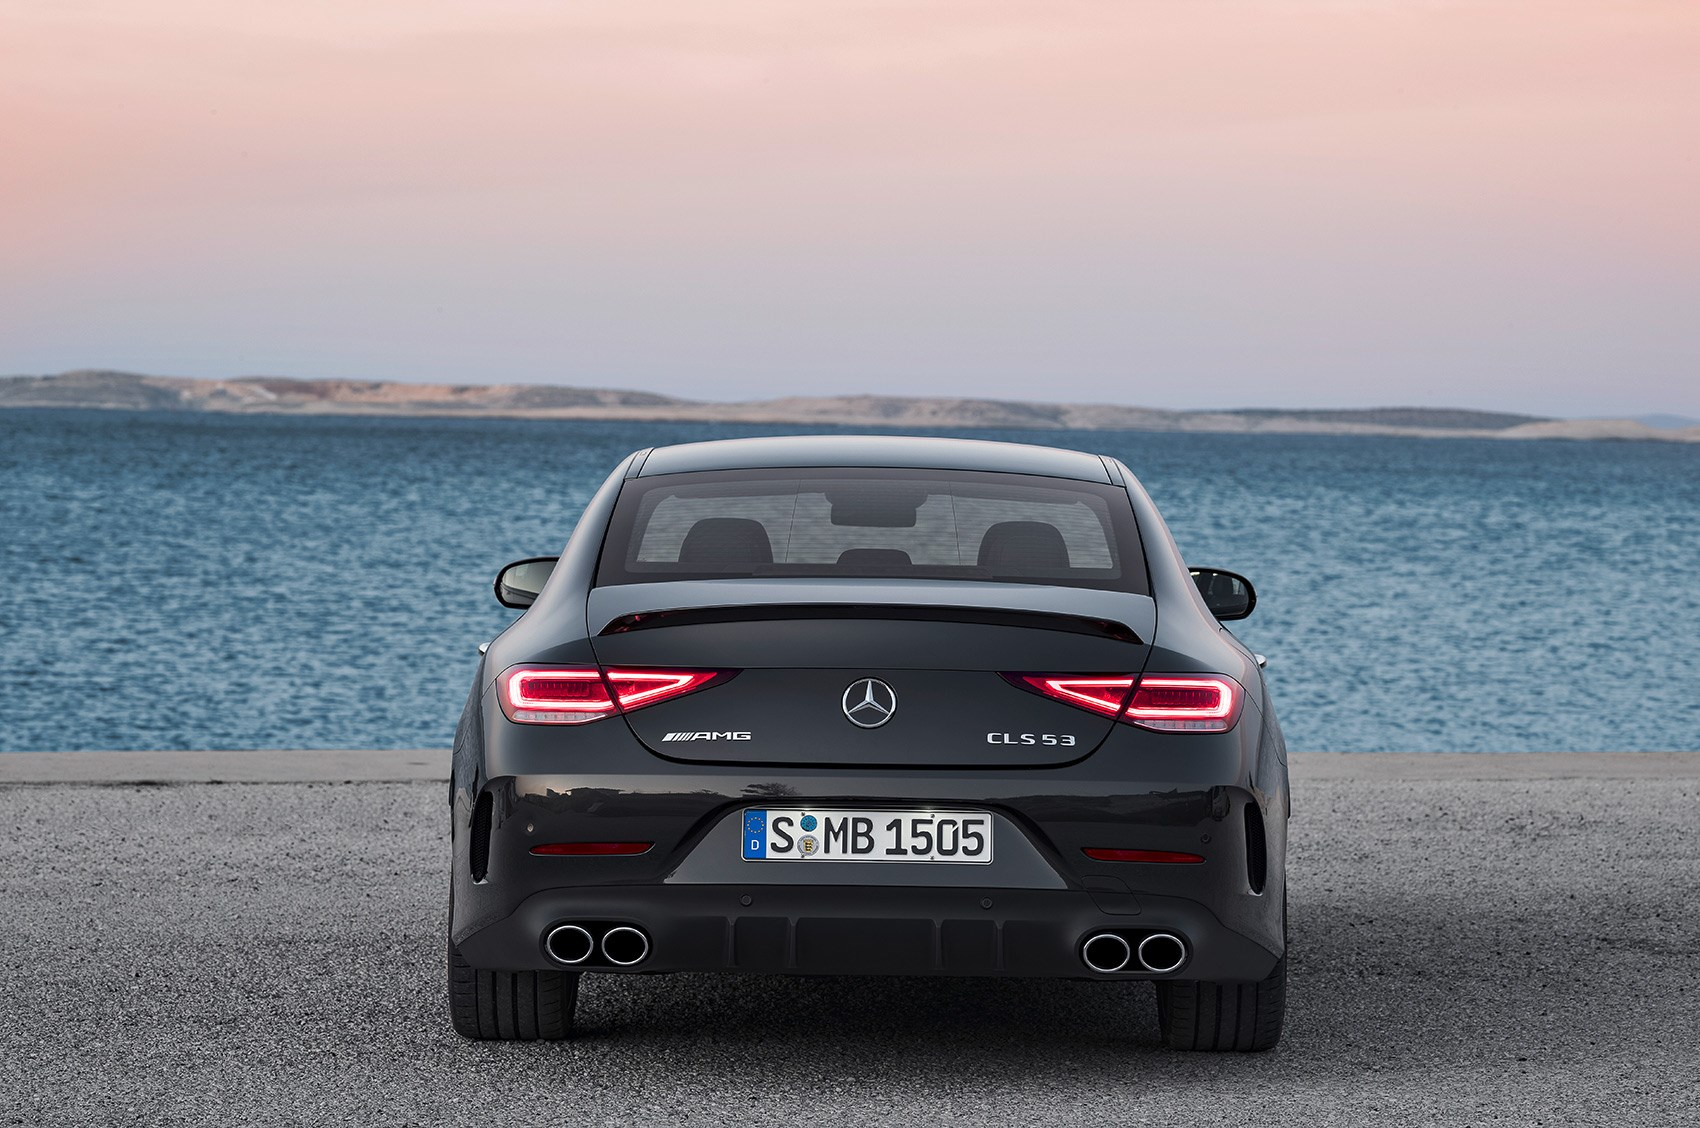 Volvo Slc >> New Mercedes-AMG CLS 53 4Matic, E53 4Matic Coupe and Cabriolet pictures news prices specs by CAR ...